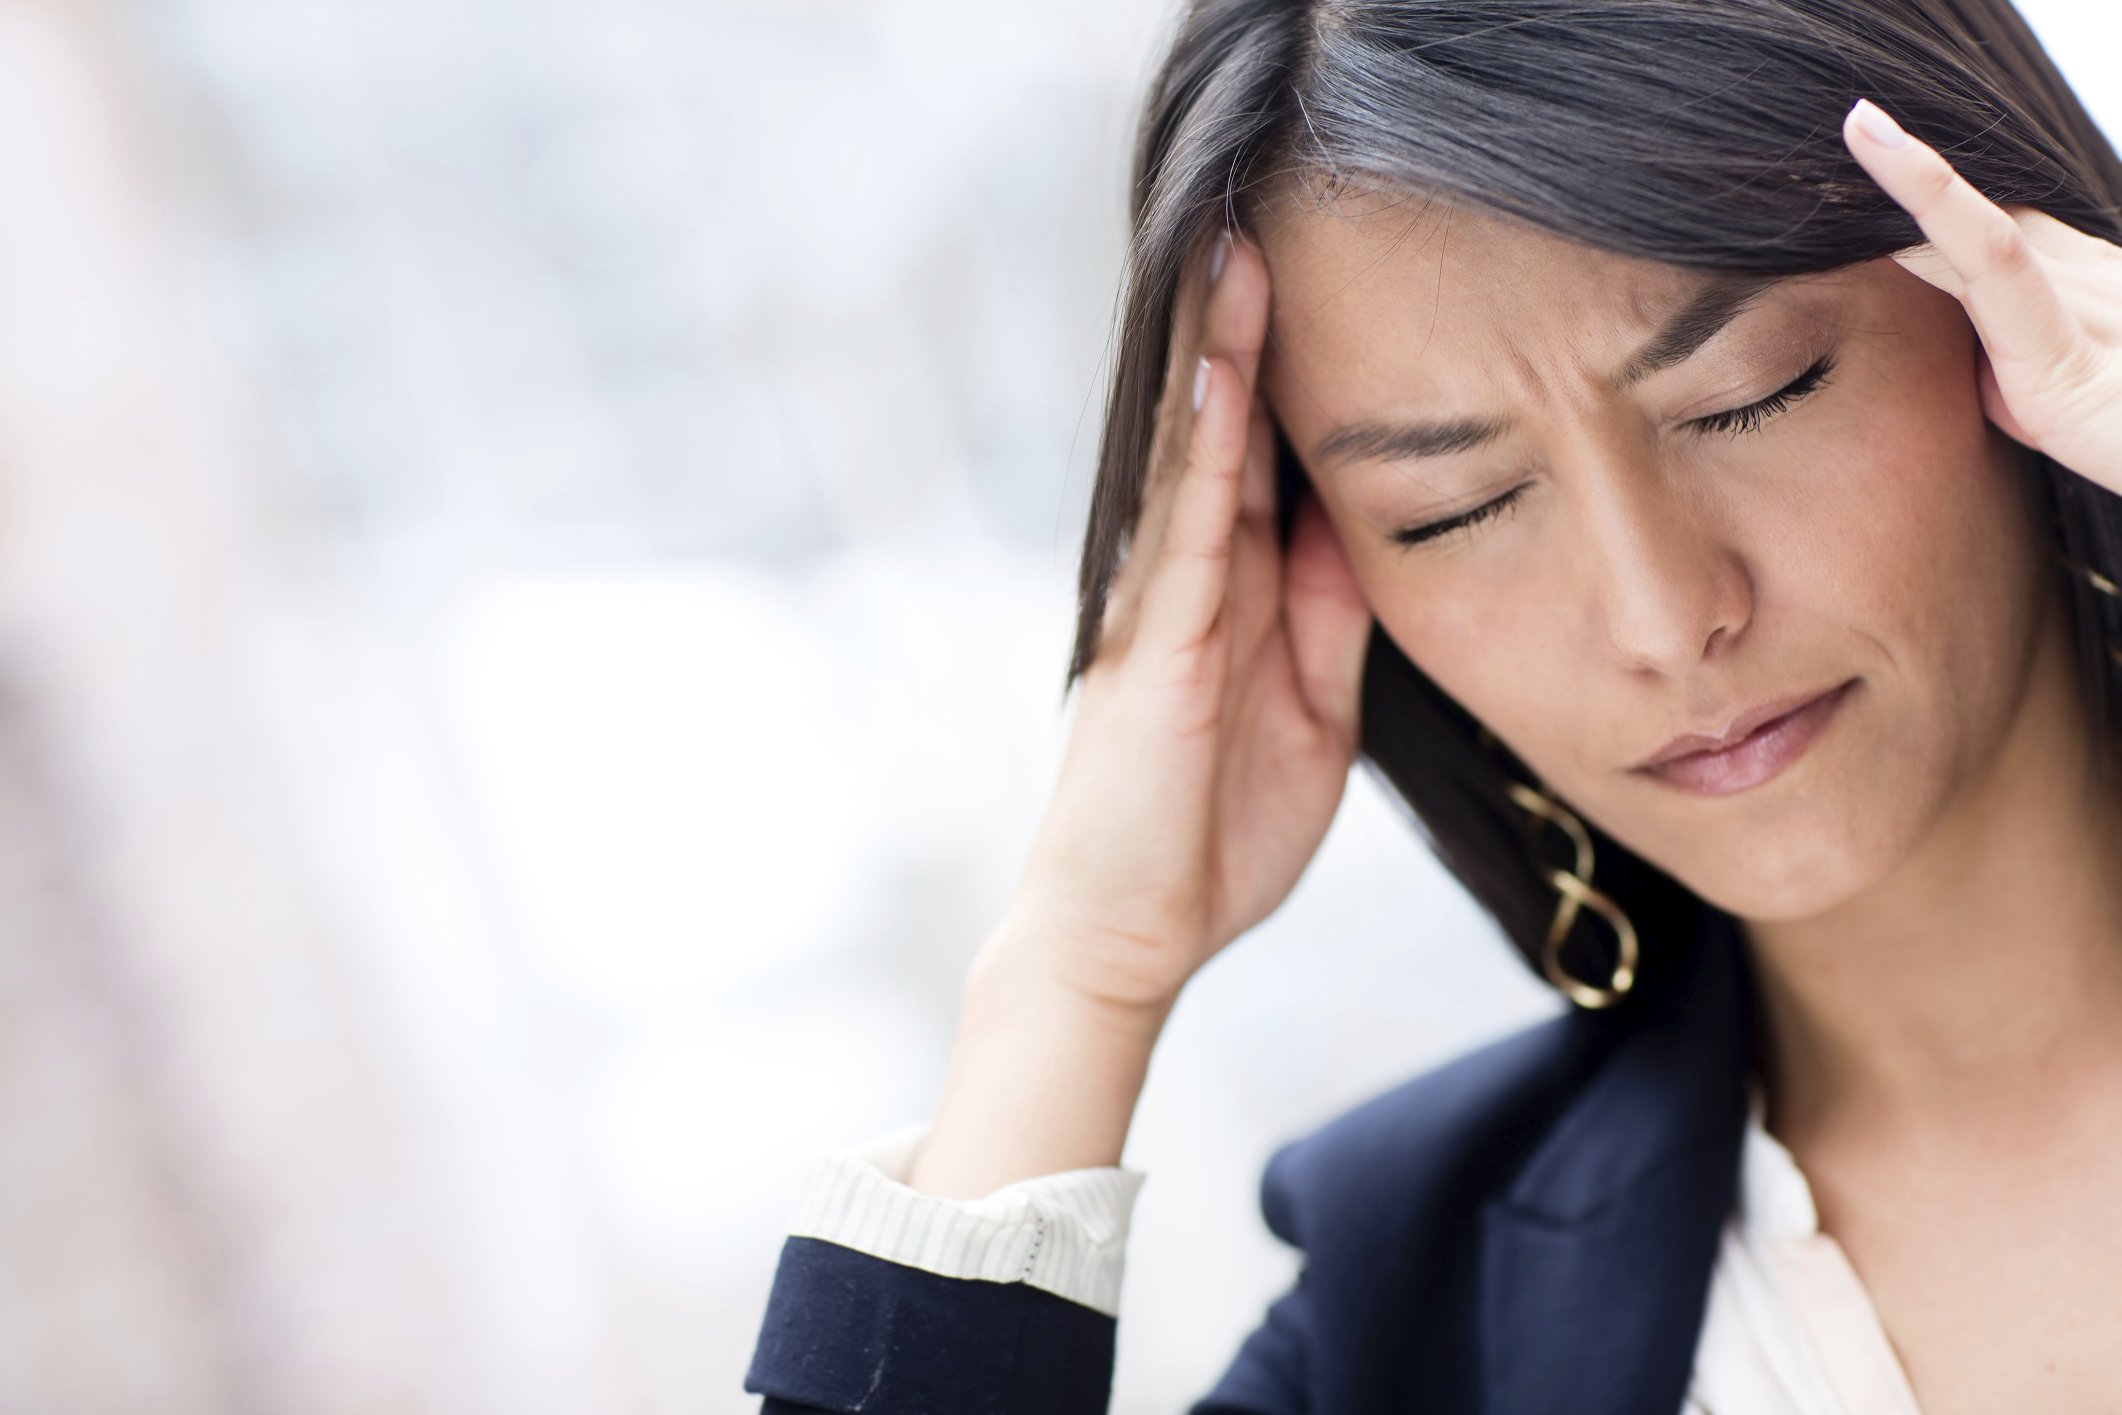 Researchers say new treatment may provide migraine relief